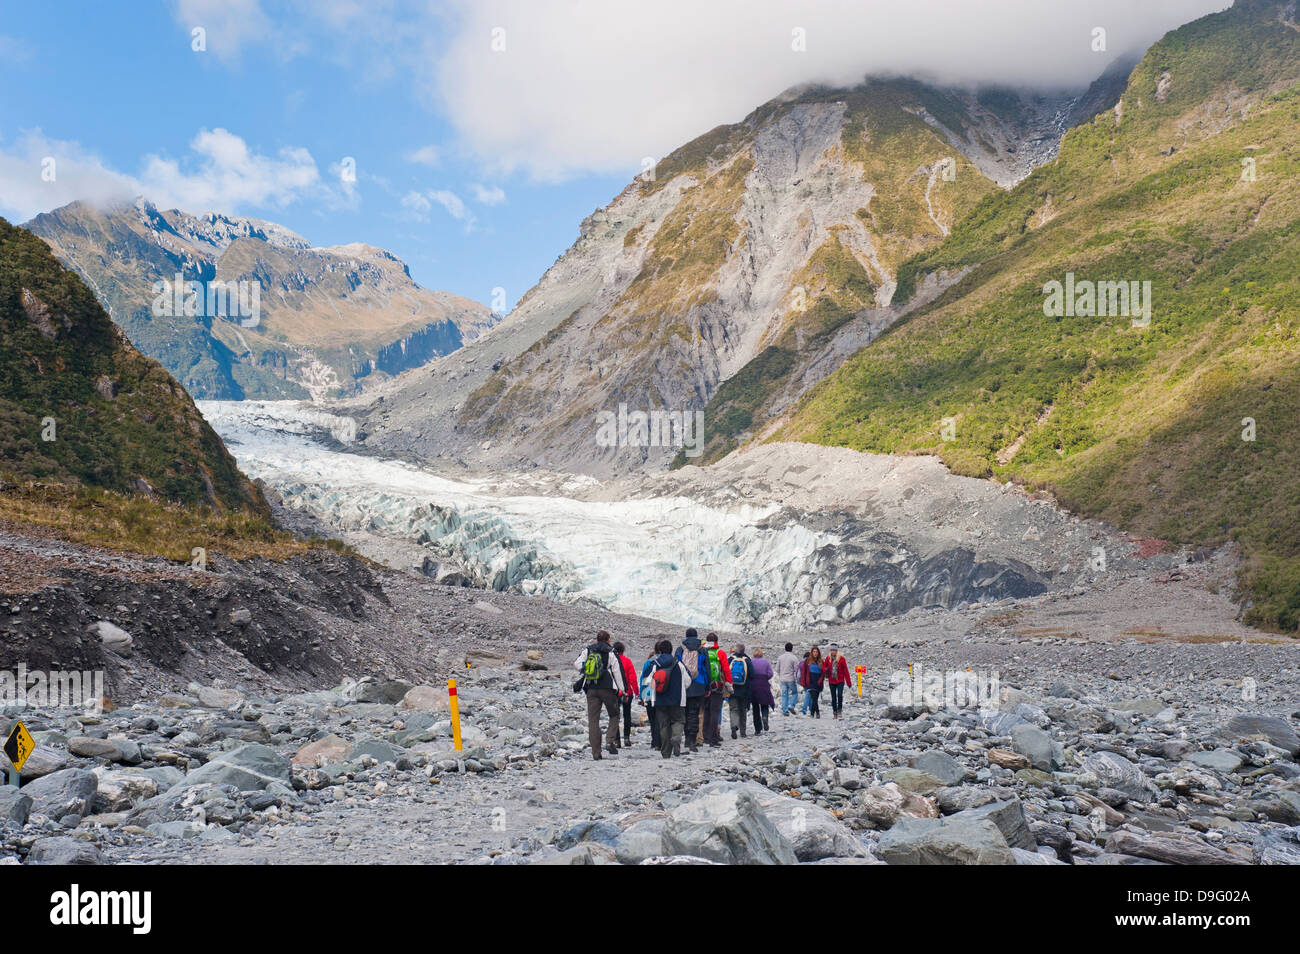 Tourists on Fox Glacier tour, Westland National Park, UNESCO World Heritage Site, South Island, New Zealand - Stock Image